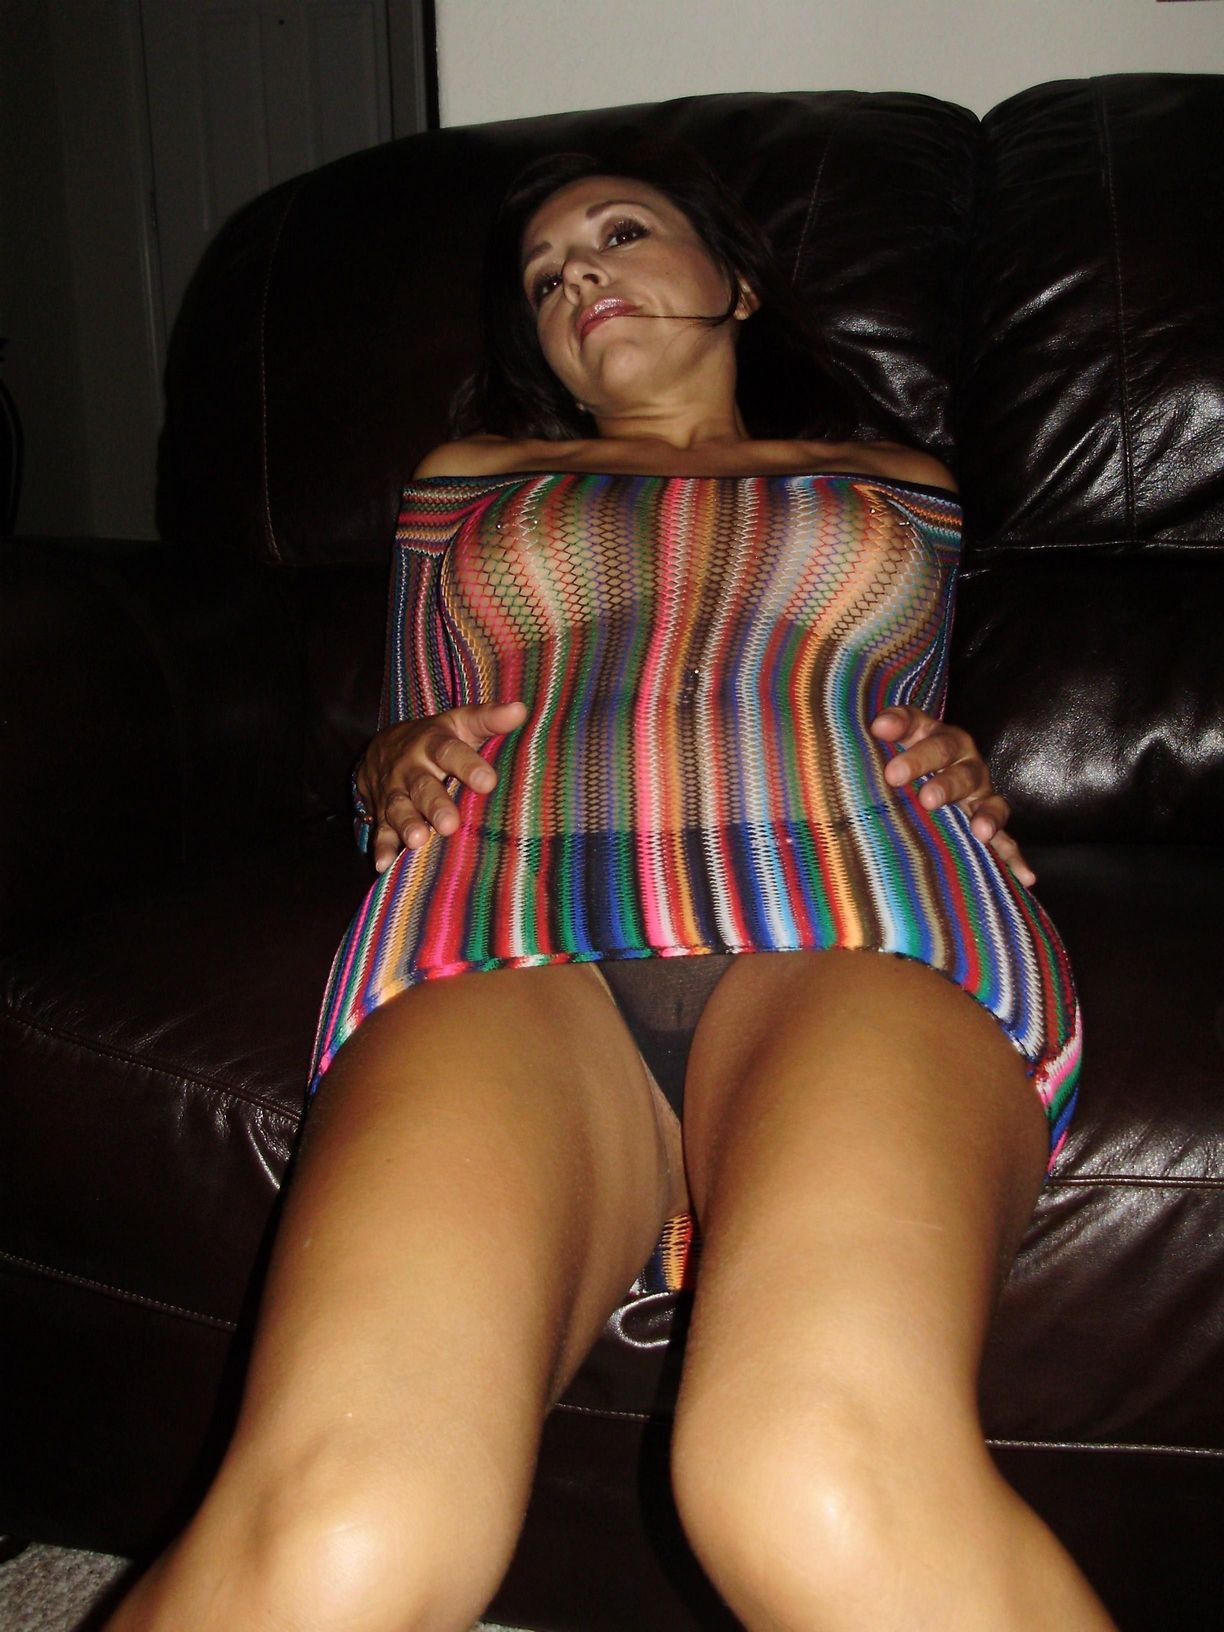 Cuckold Interracial Wife  Amateur Housewife Cuckold